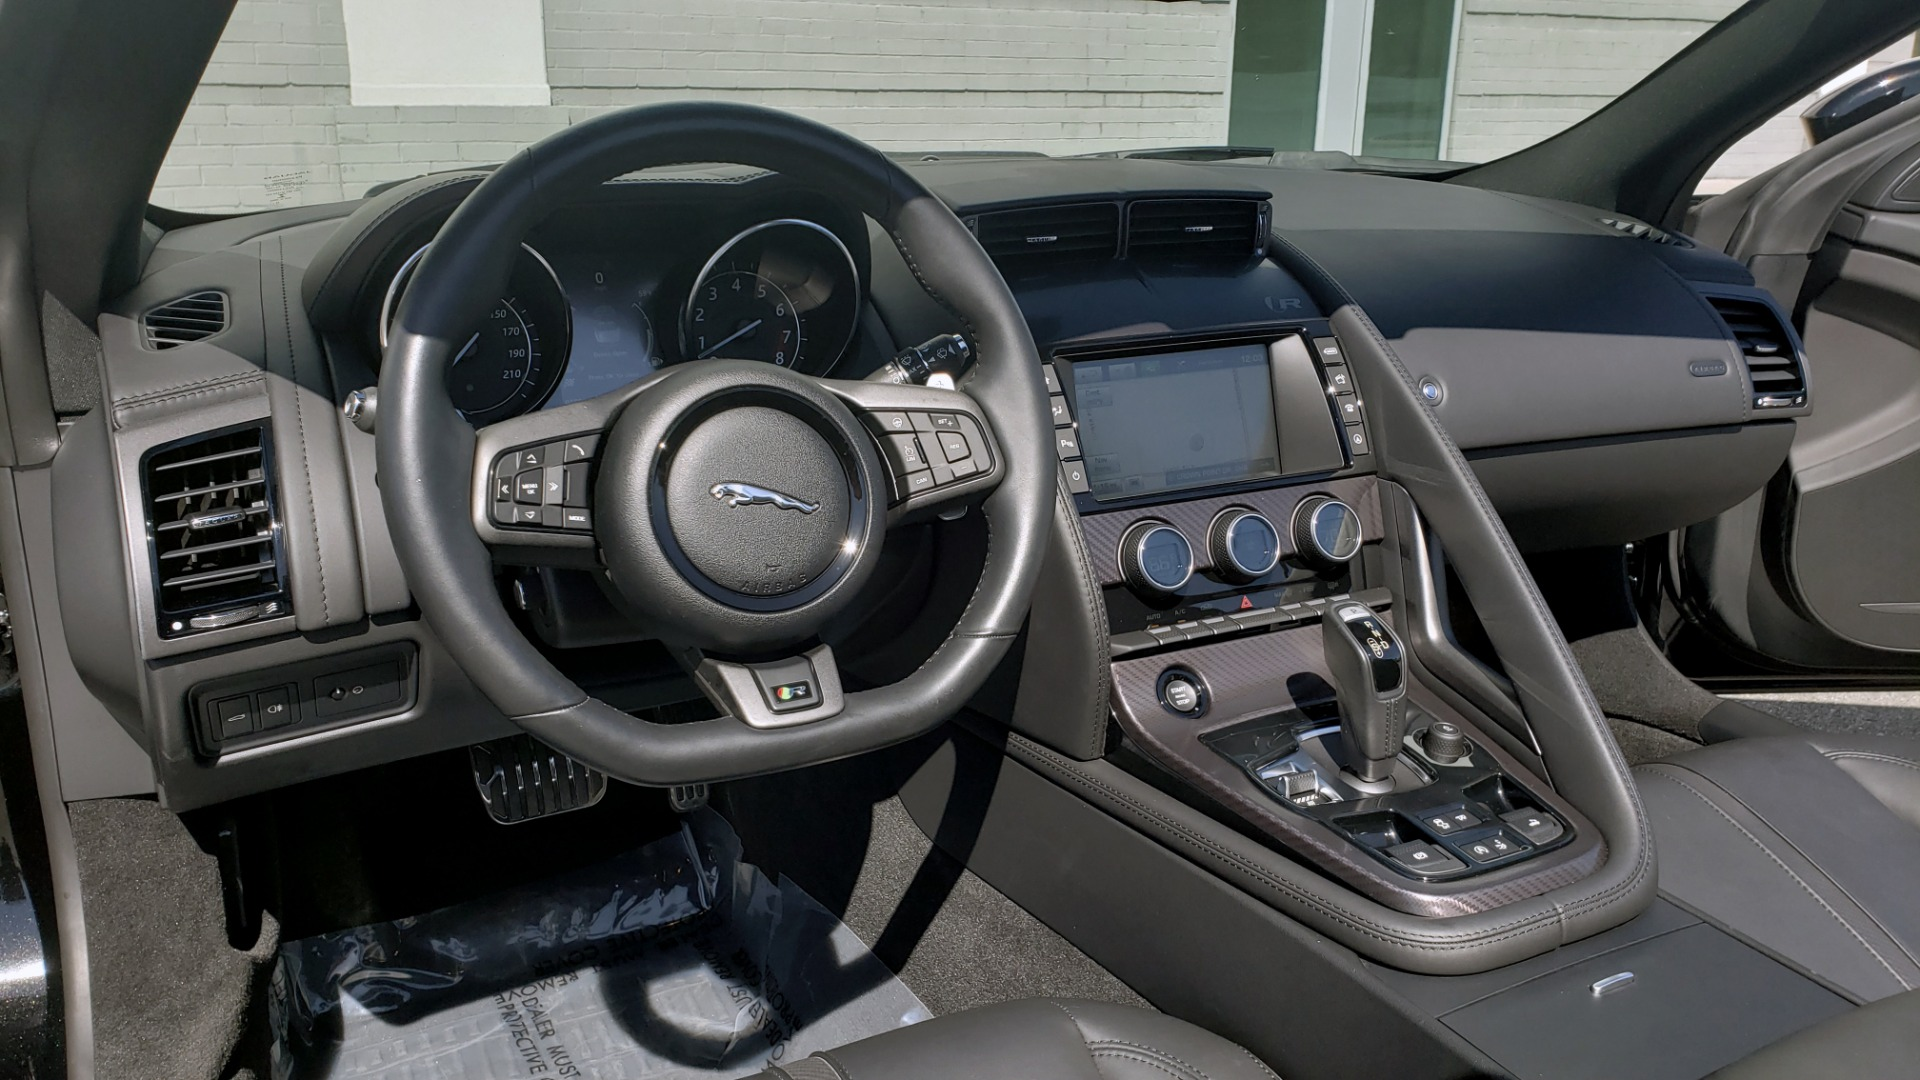 Used 2016 Jaguar F-TYPE R CONVERTIBLE / SC 5.0L 550HP / VISION PACK 3 / BSM / REARVIEW for sale $63,000 at Formula Imports in Charlotte NC 28227 83